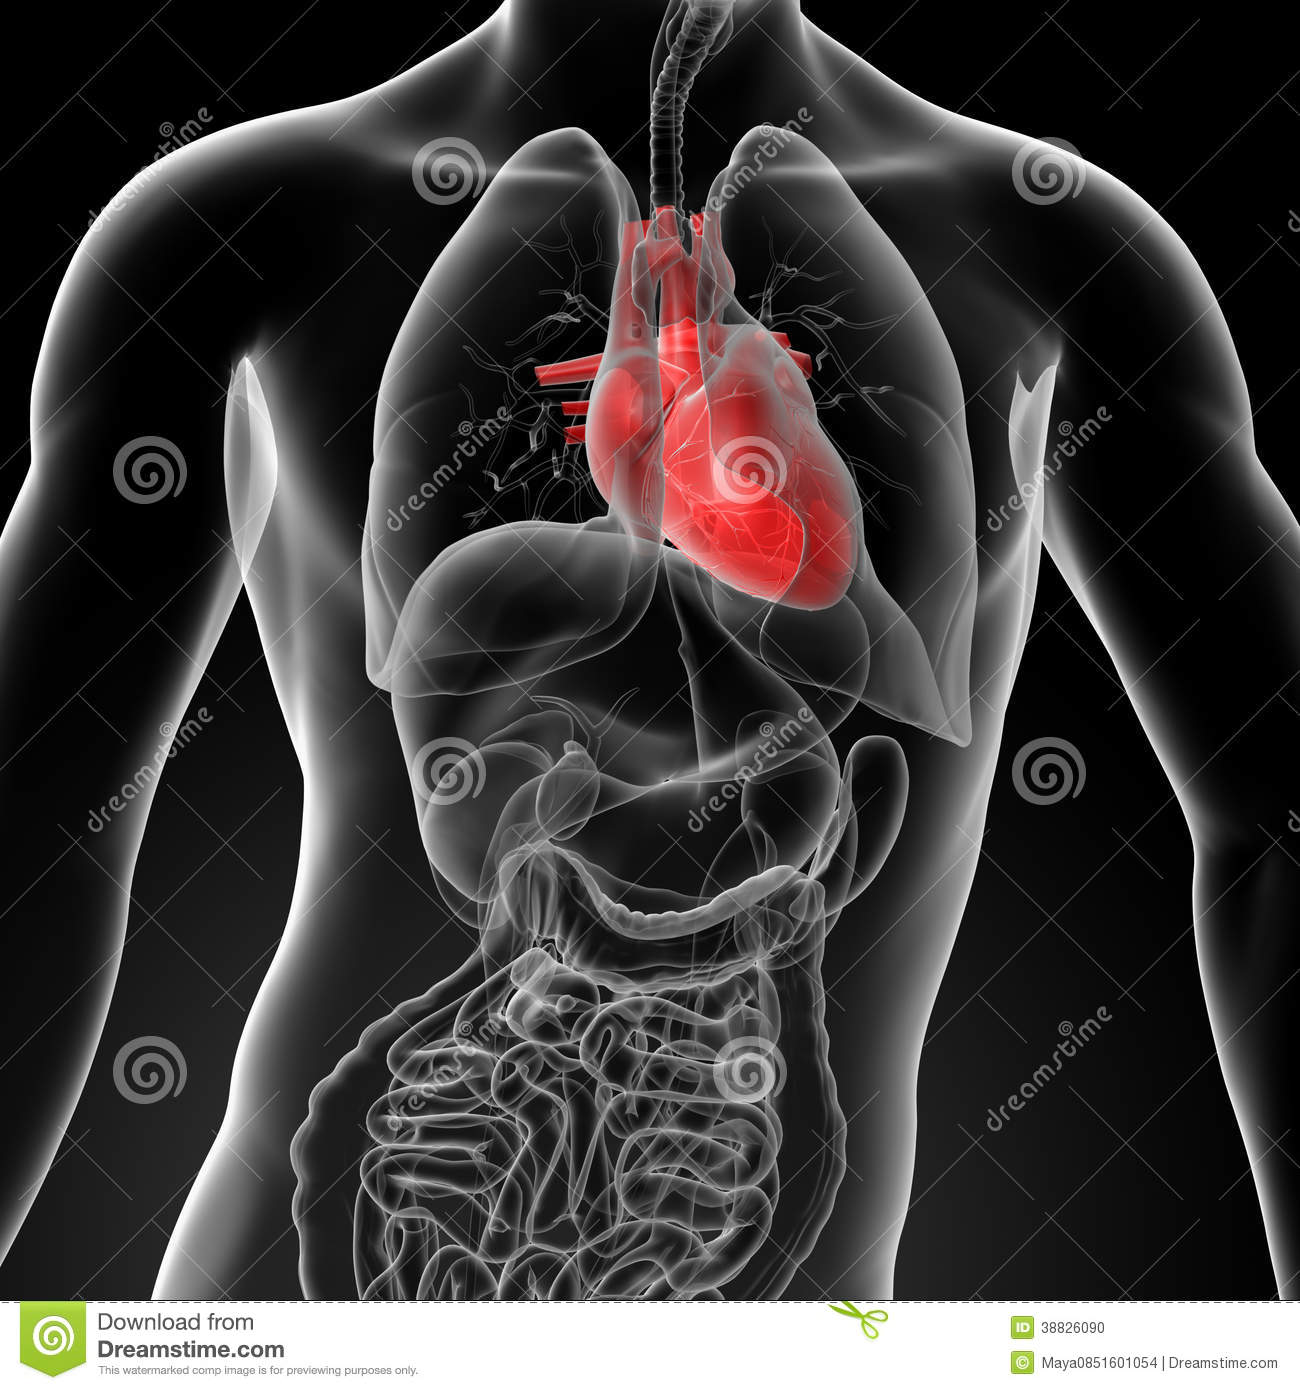 3d Render Human Heart Anatomy Stock Illustration - Illustration of ...